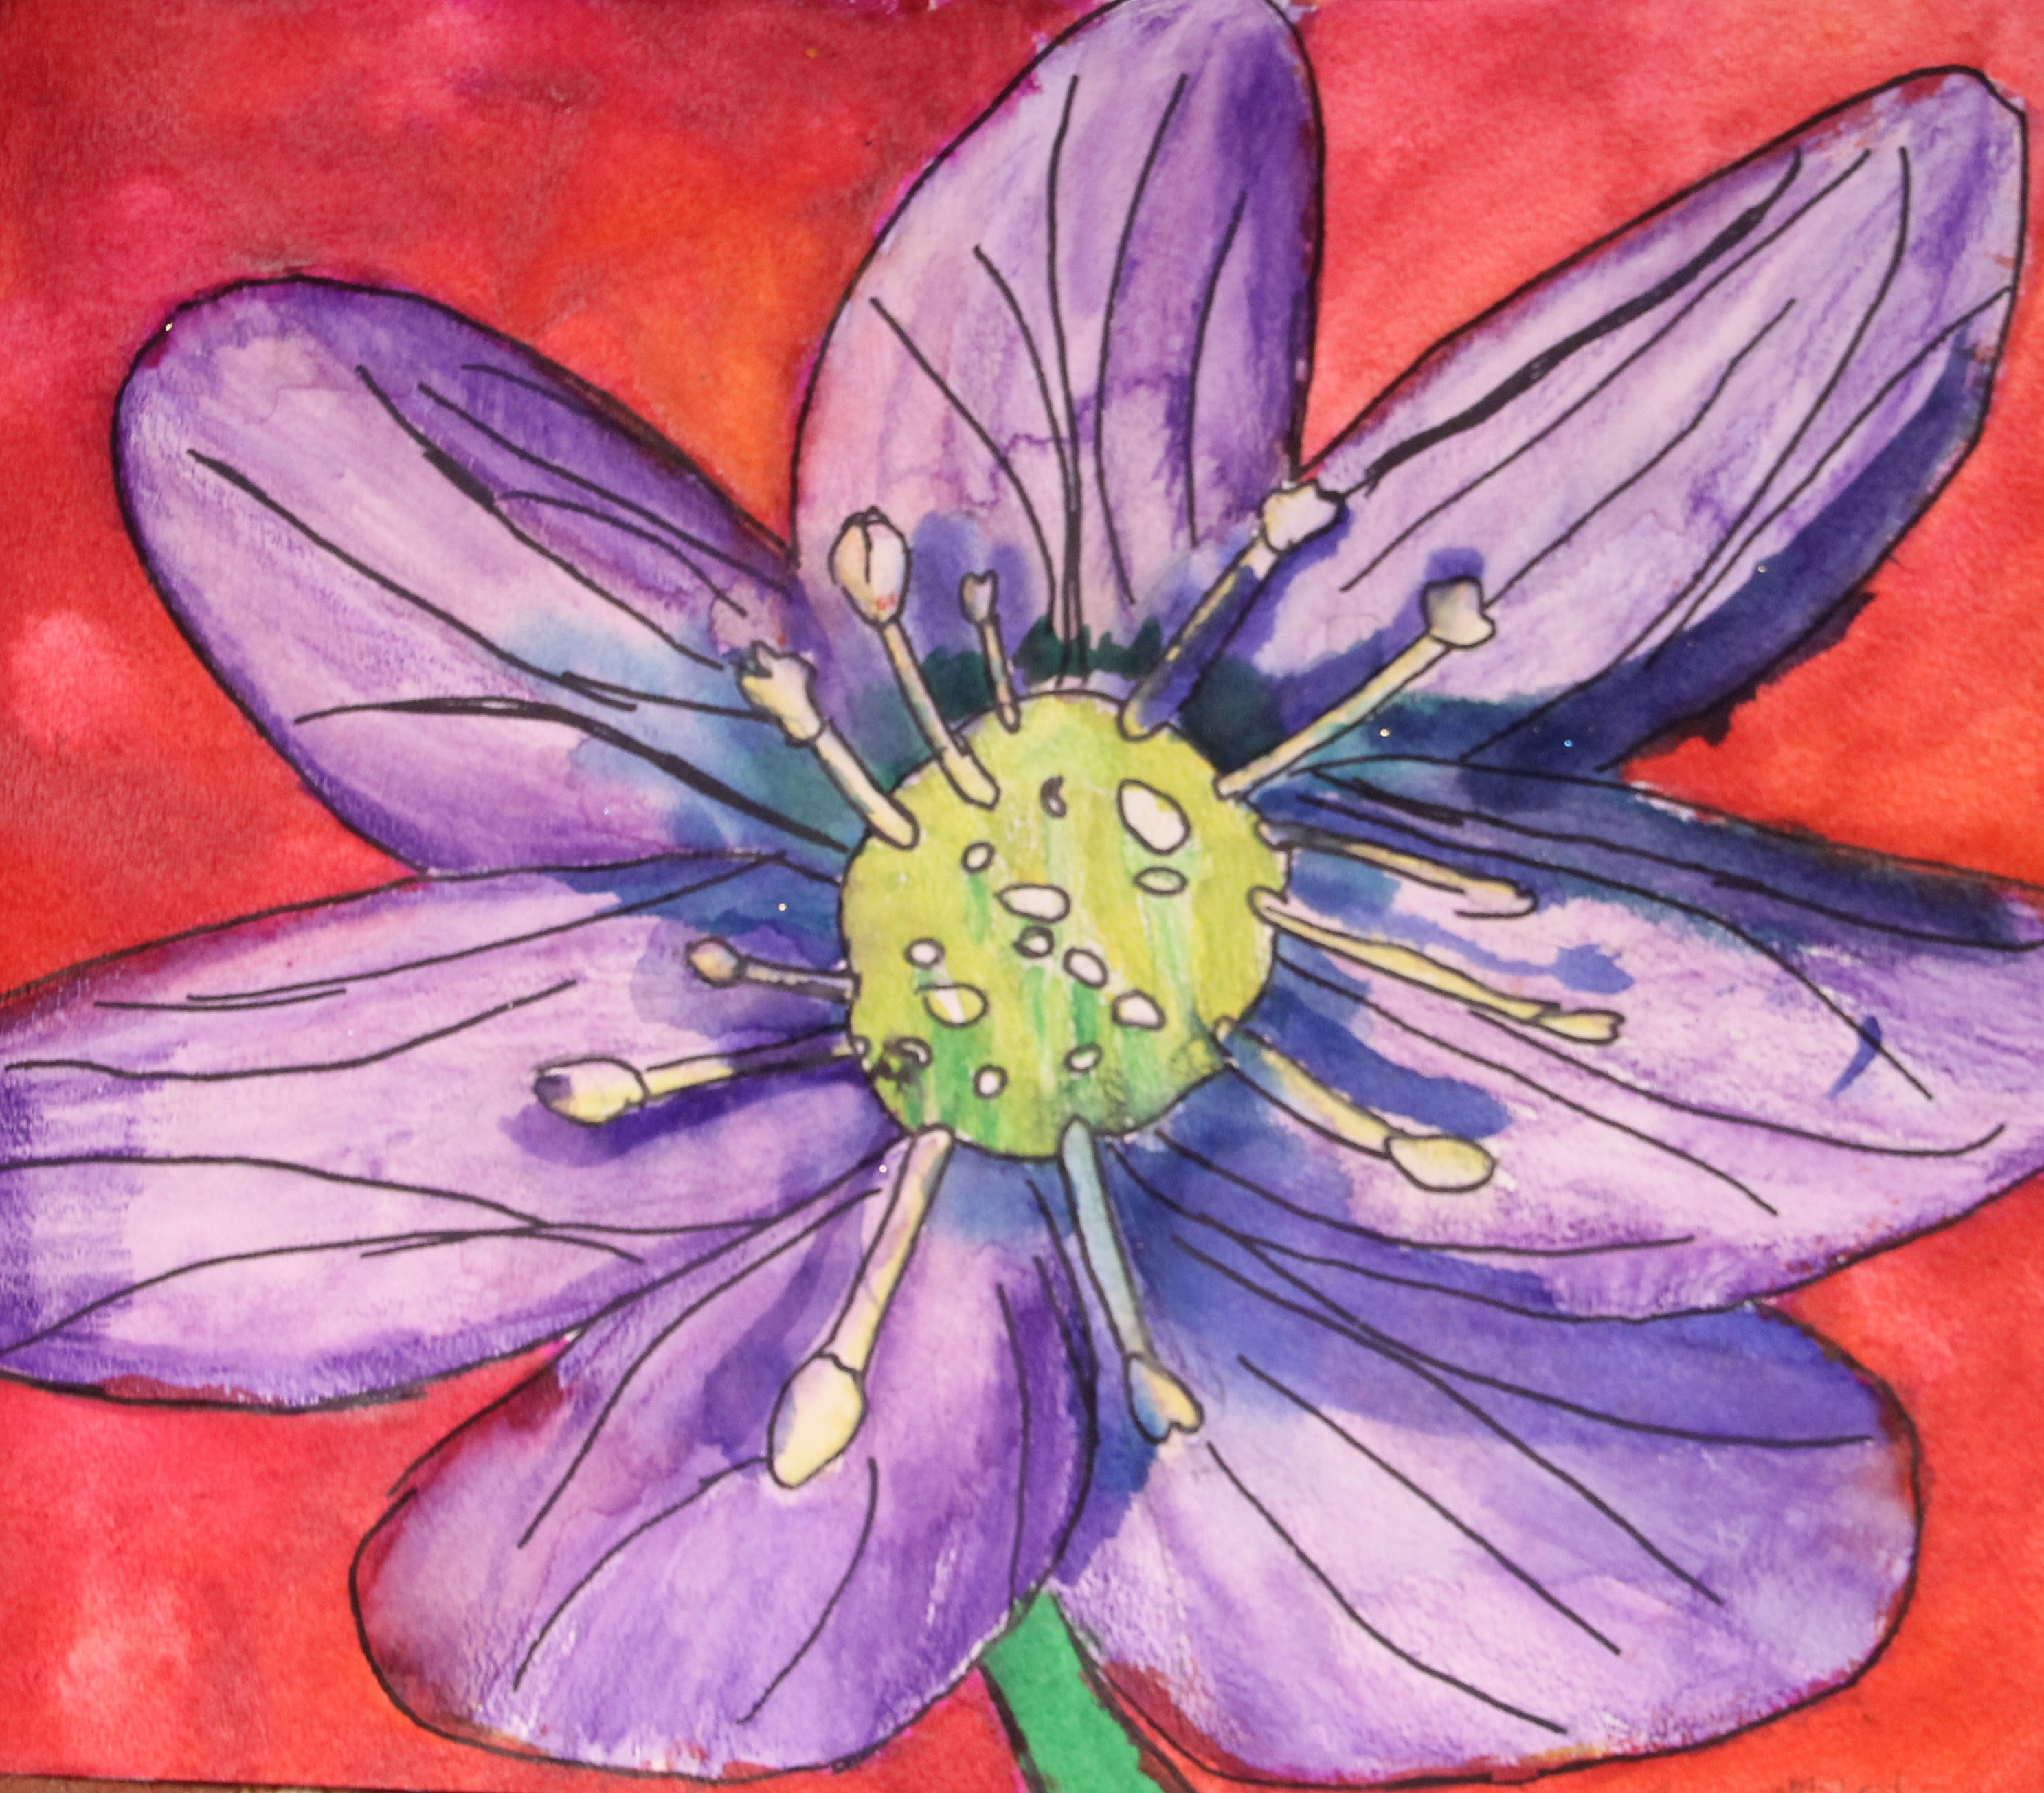 Botany Flowers Painting Details Watercolor Oil Pastel 3rd